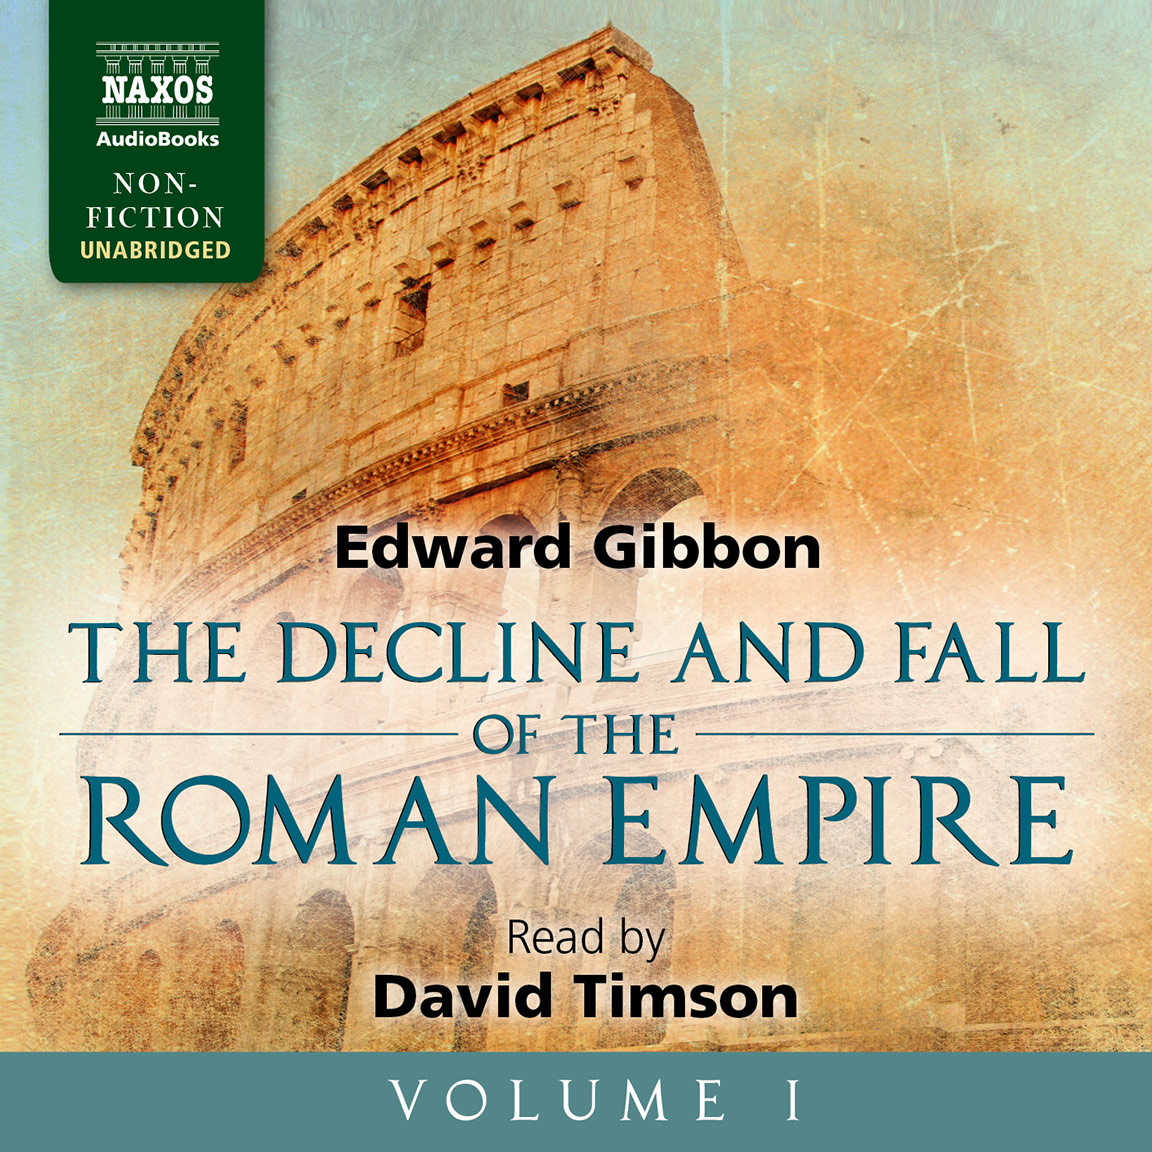 "reasons for the fall of the roman empire essay The essay ""general observations on the fall of the roman empire in the west"" by edward gibbon gives three main reasons for the fall of the roman empire."